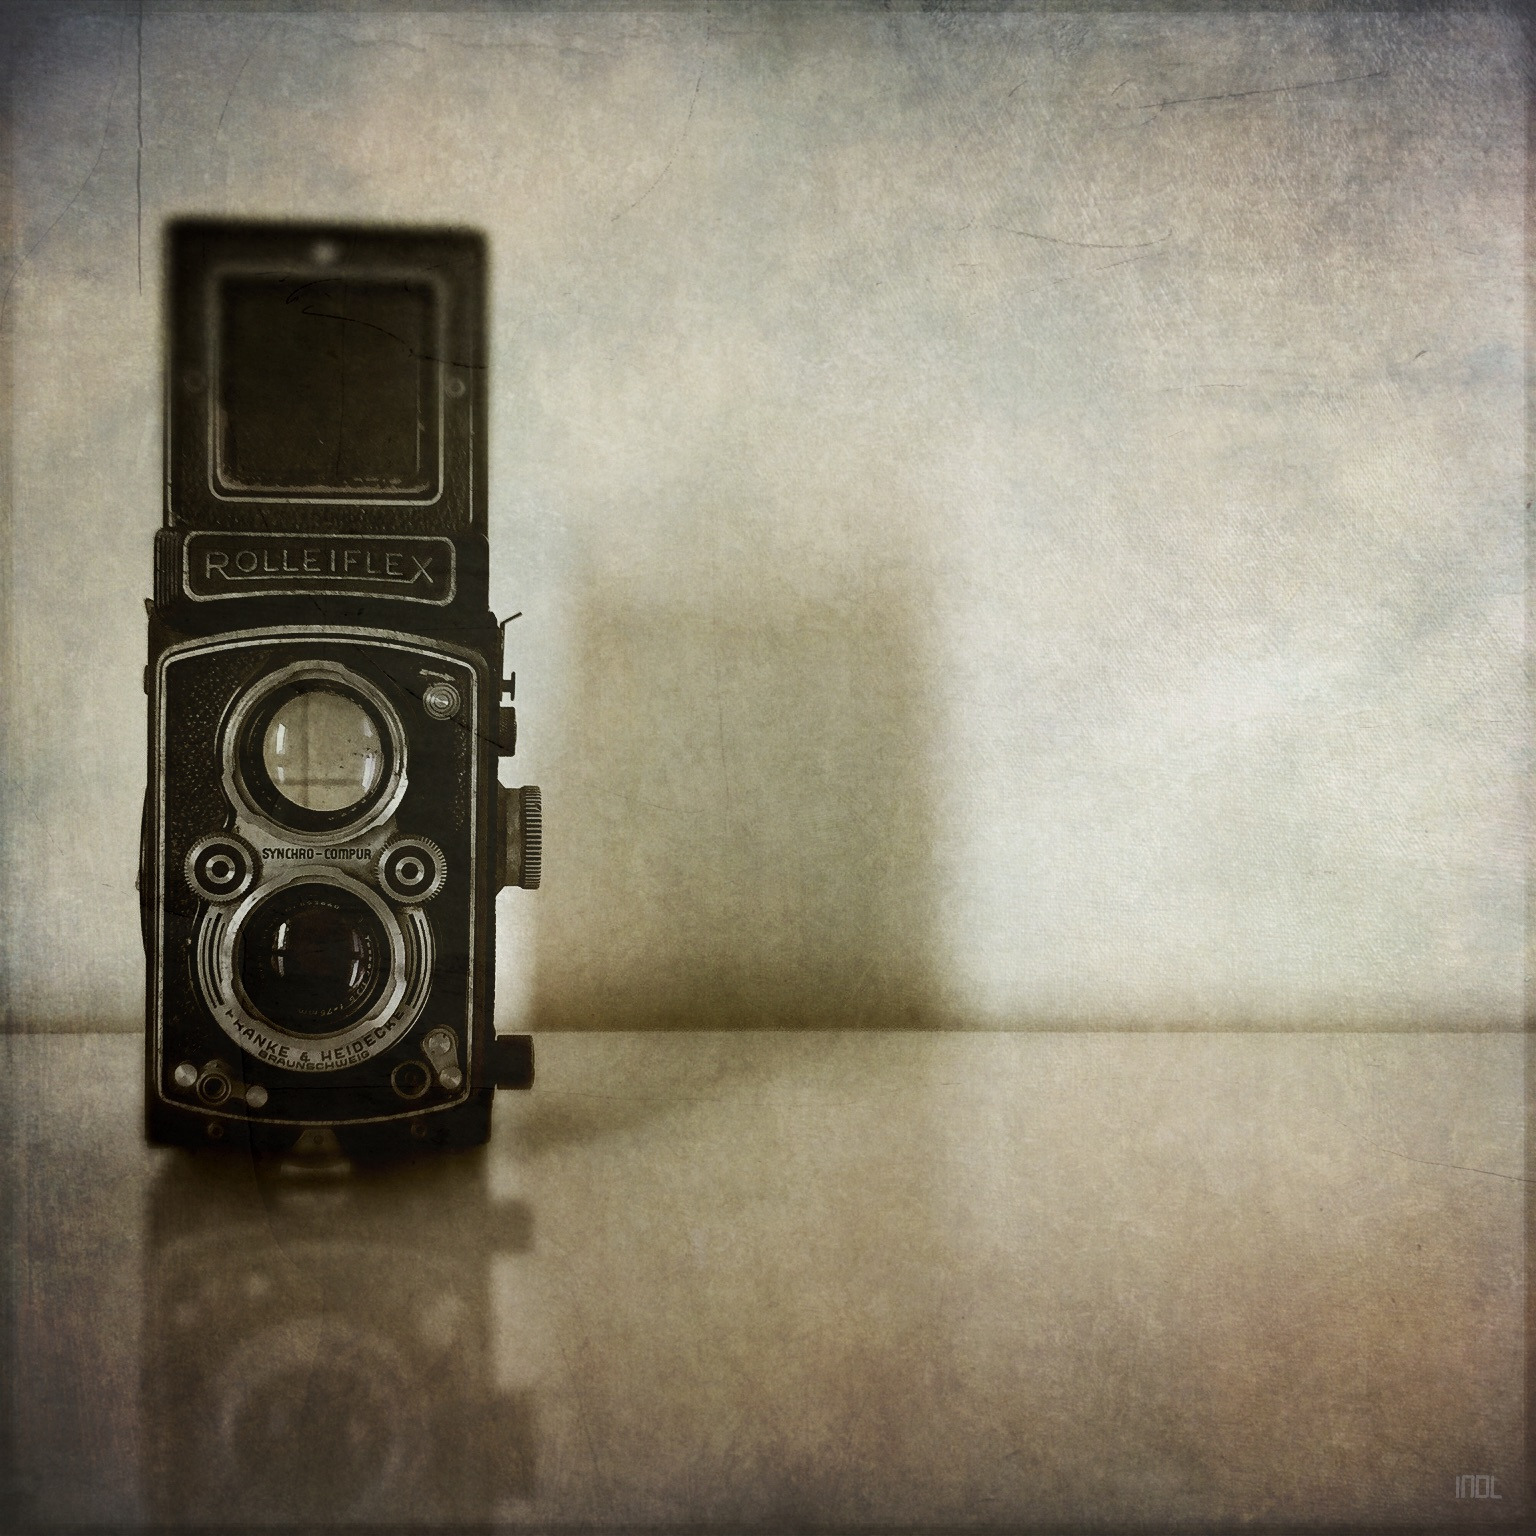 A shot of my Rolleiflex, which will be out capturing some light again for the first time in many years ...